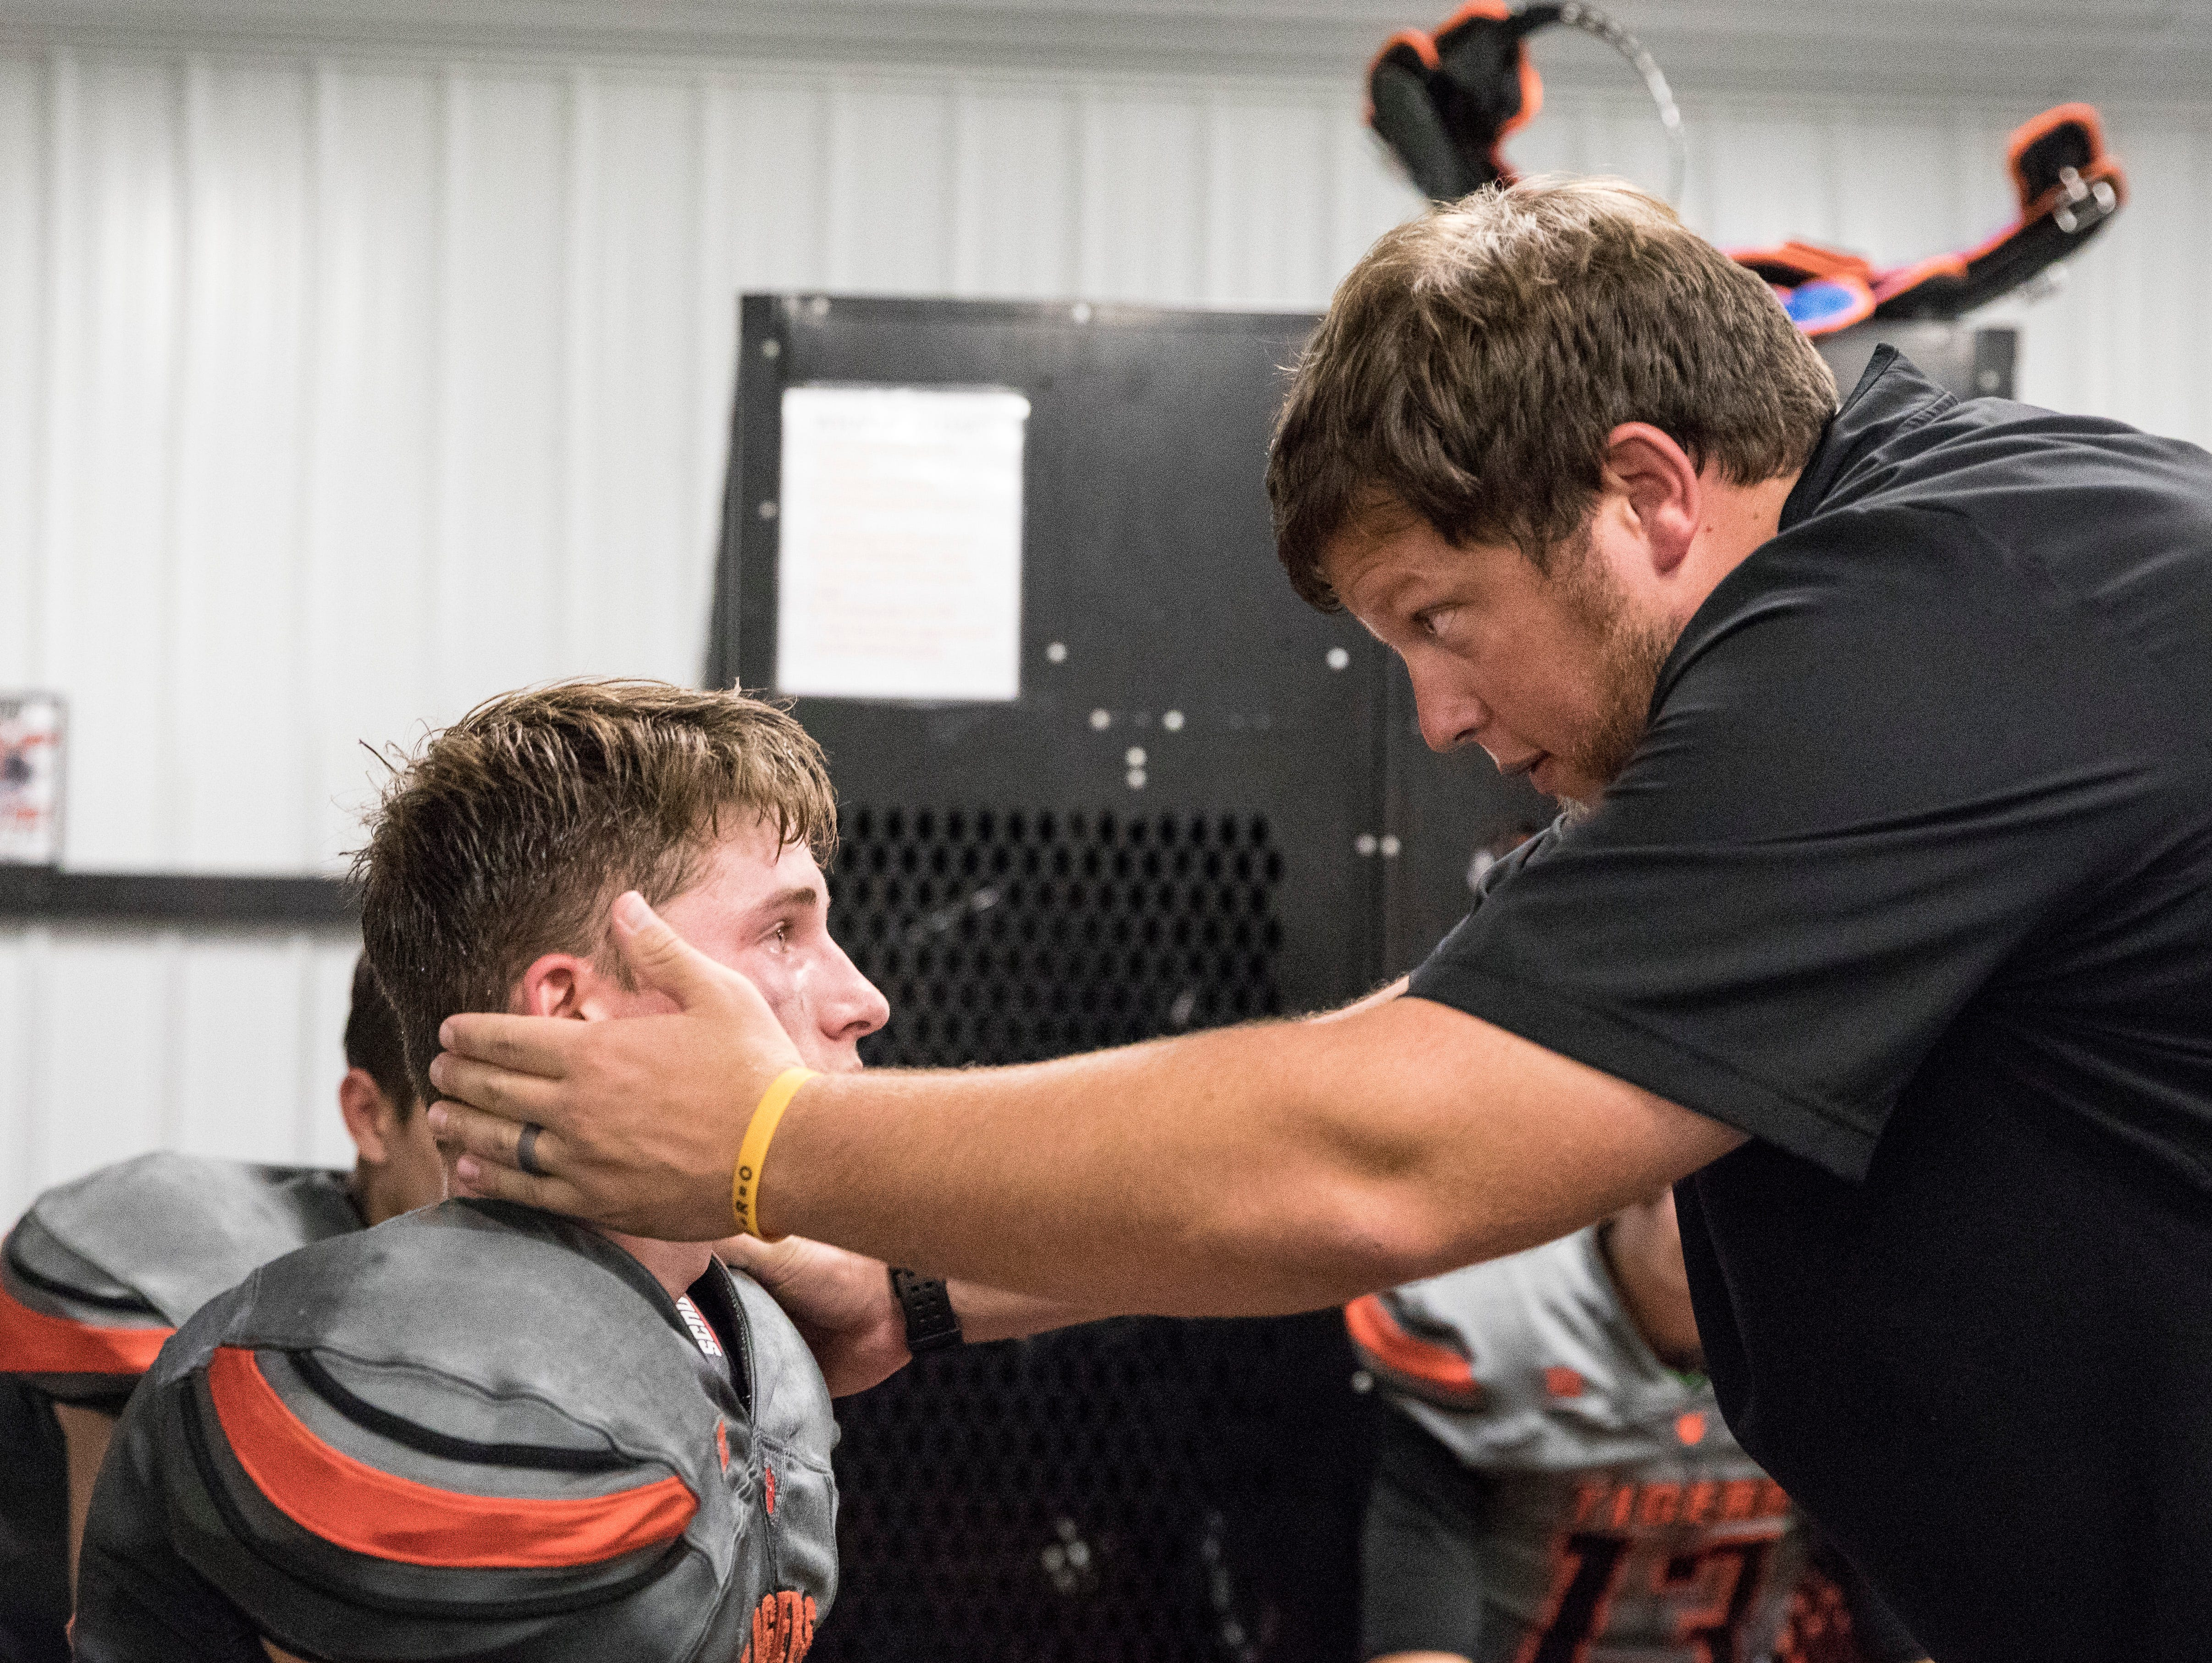 Waverly's Payton Shoemaker has a moment with coach Daniel Sand during the game's first lightning delay of the evening against Wheelersburg with 3:19 left in the first quarter.